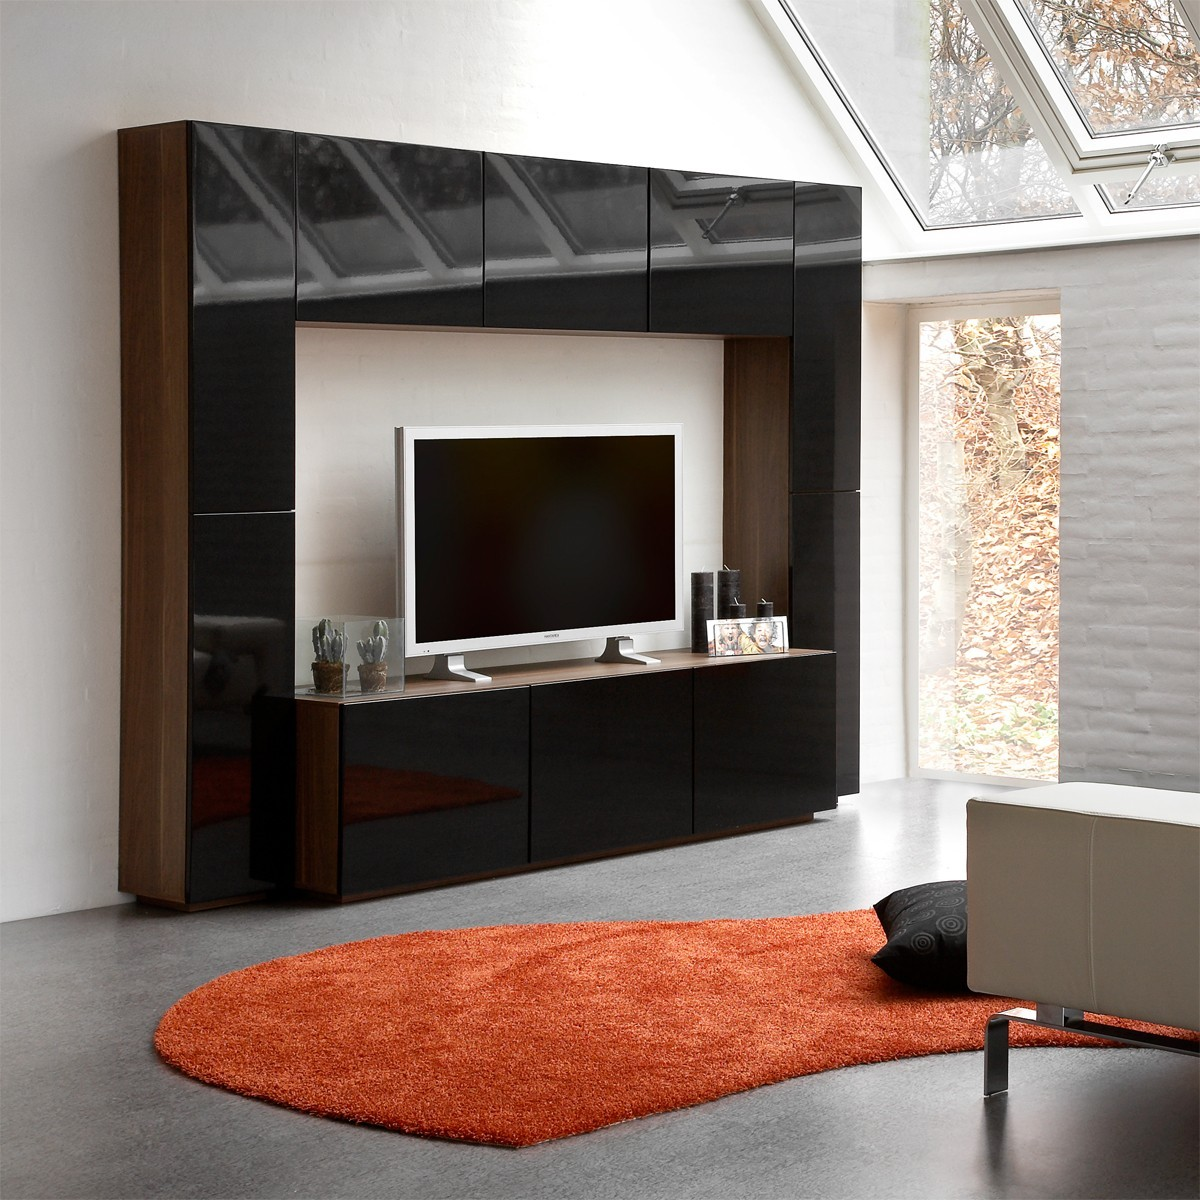 moderne fernseher wand interessante ideen. Black Bedroom Furniture Sets. Home Design Ideas